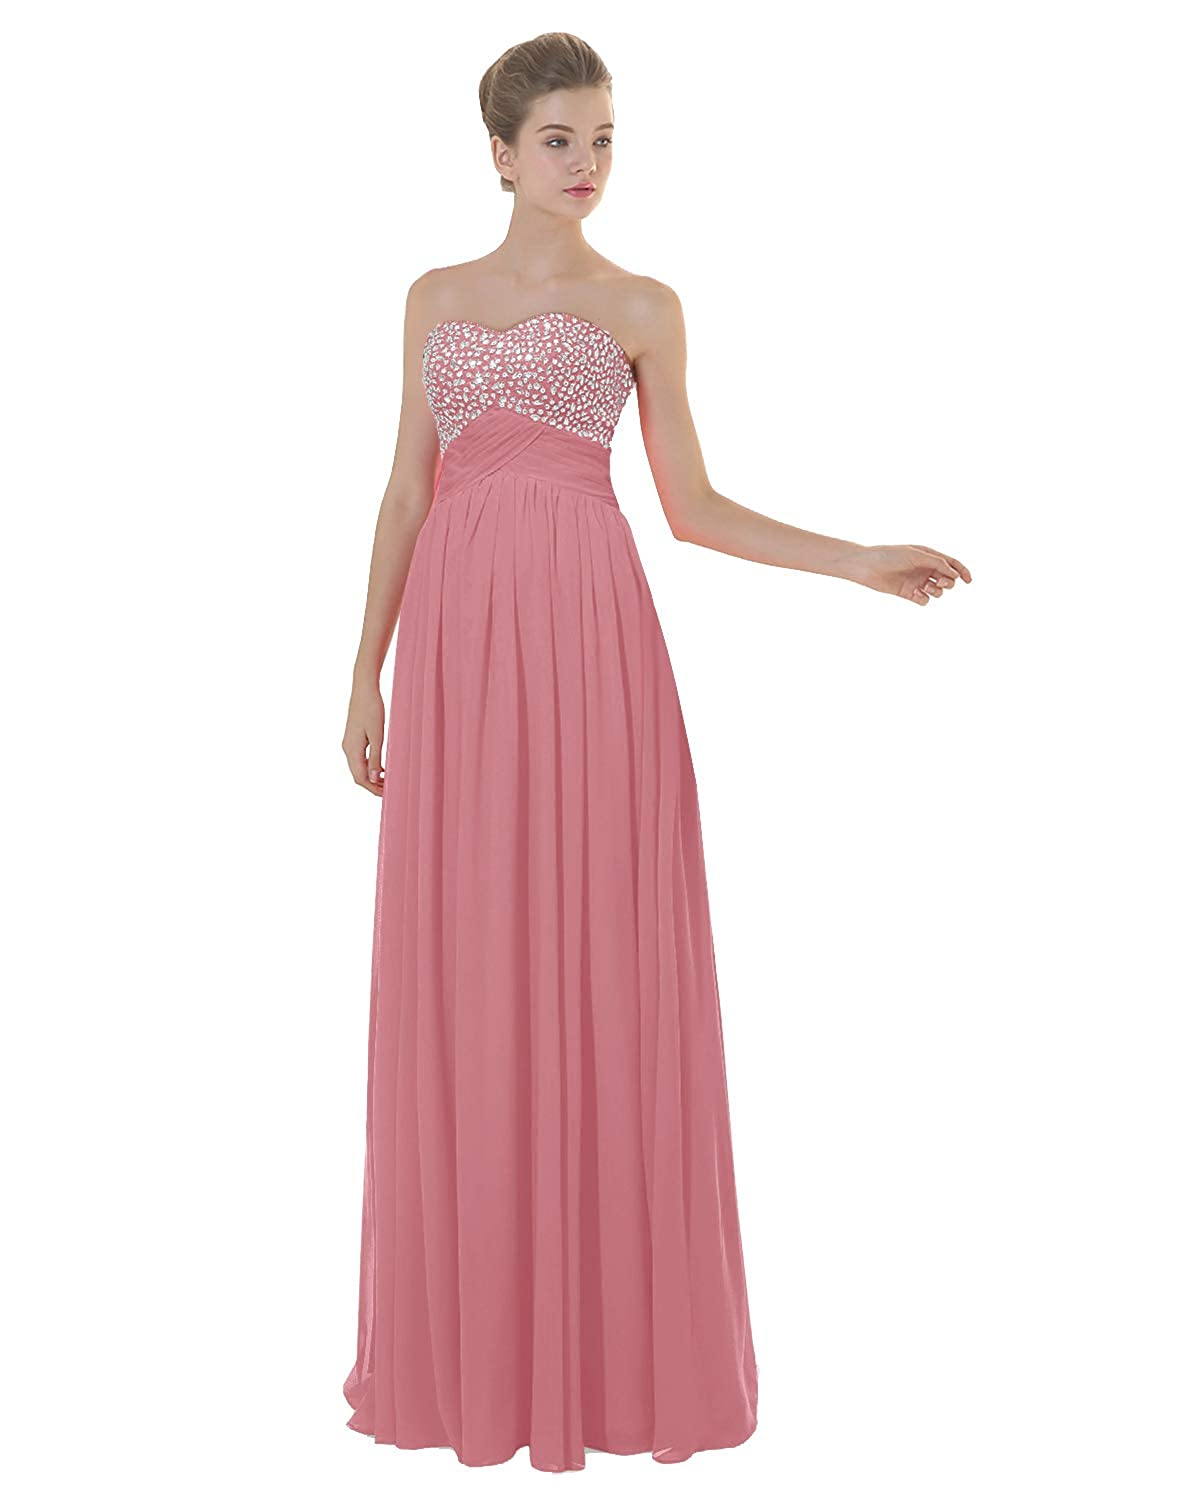 Dusky Pink ANGELWARDROBE Empire Beaded Sweetheart Neck Prom Gowns Long Evening Dresses Party Skirts